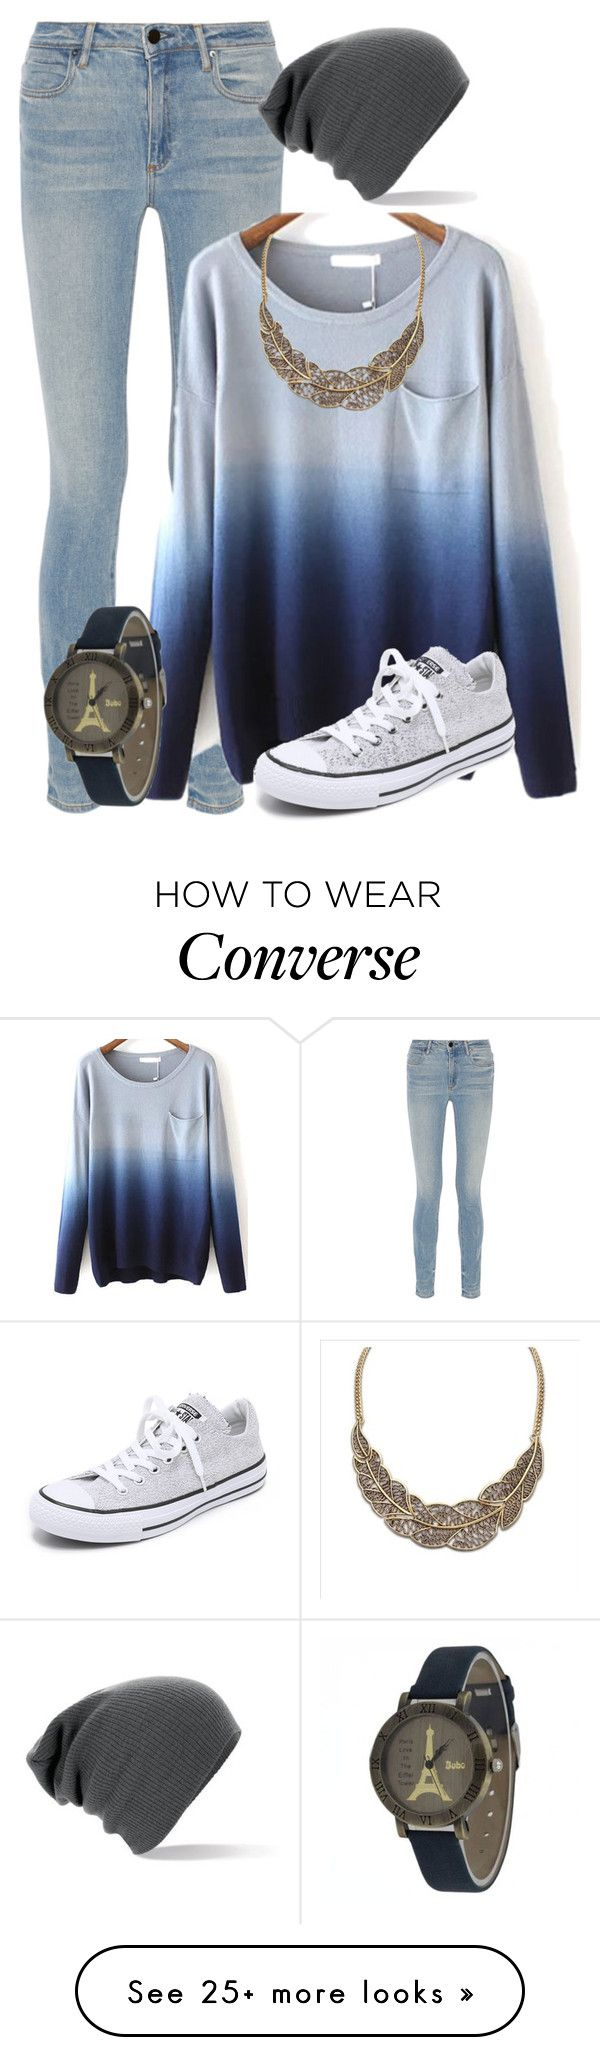 """Fashion in Fall"" by myfriendshop on Polyvore featuring Alexander Wang and Converse"